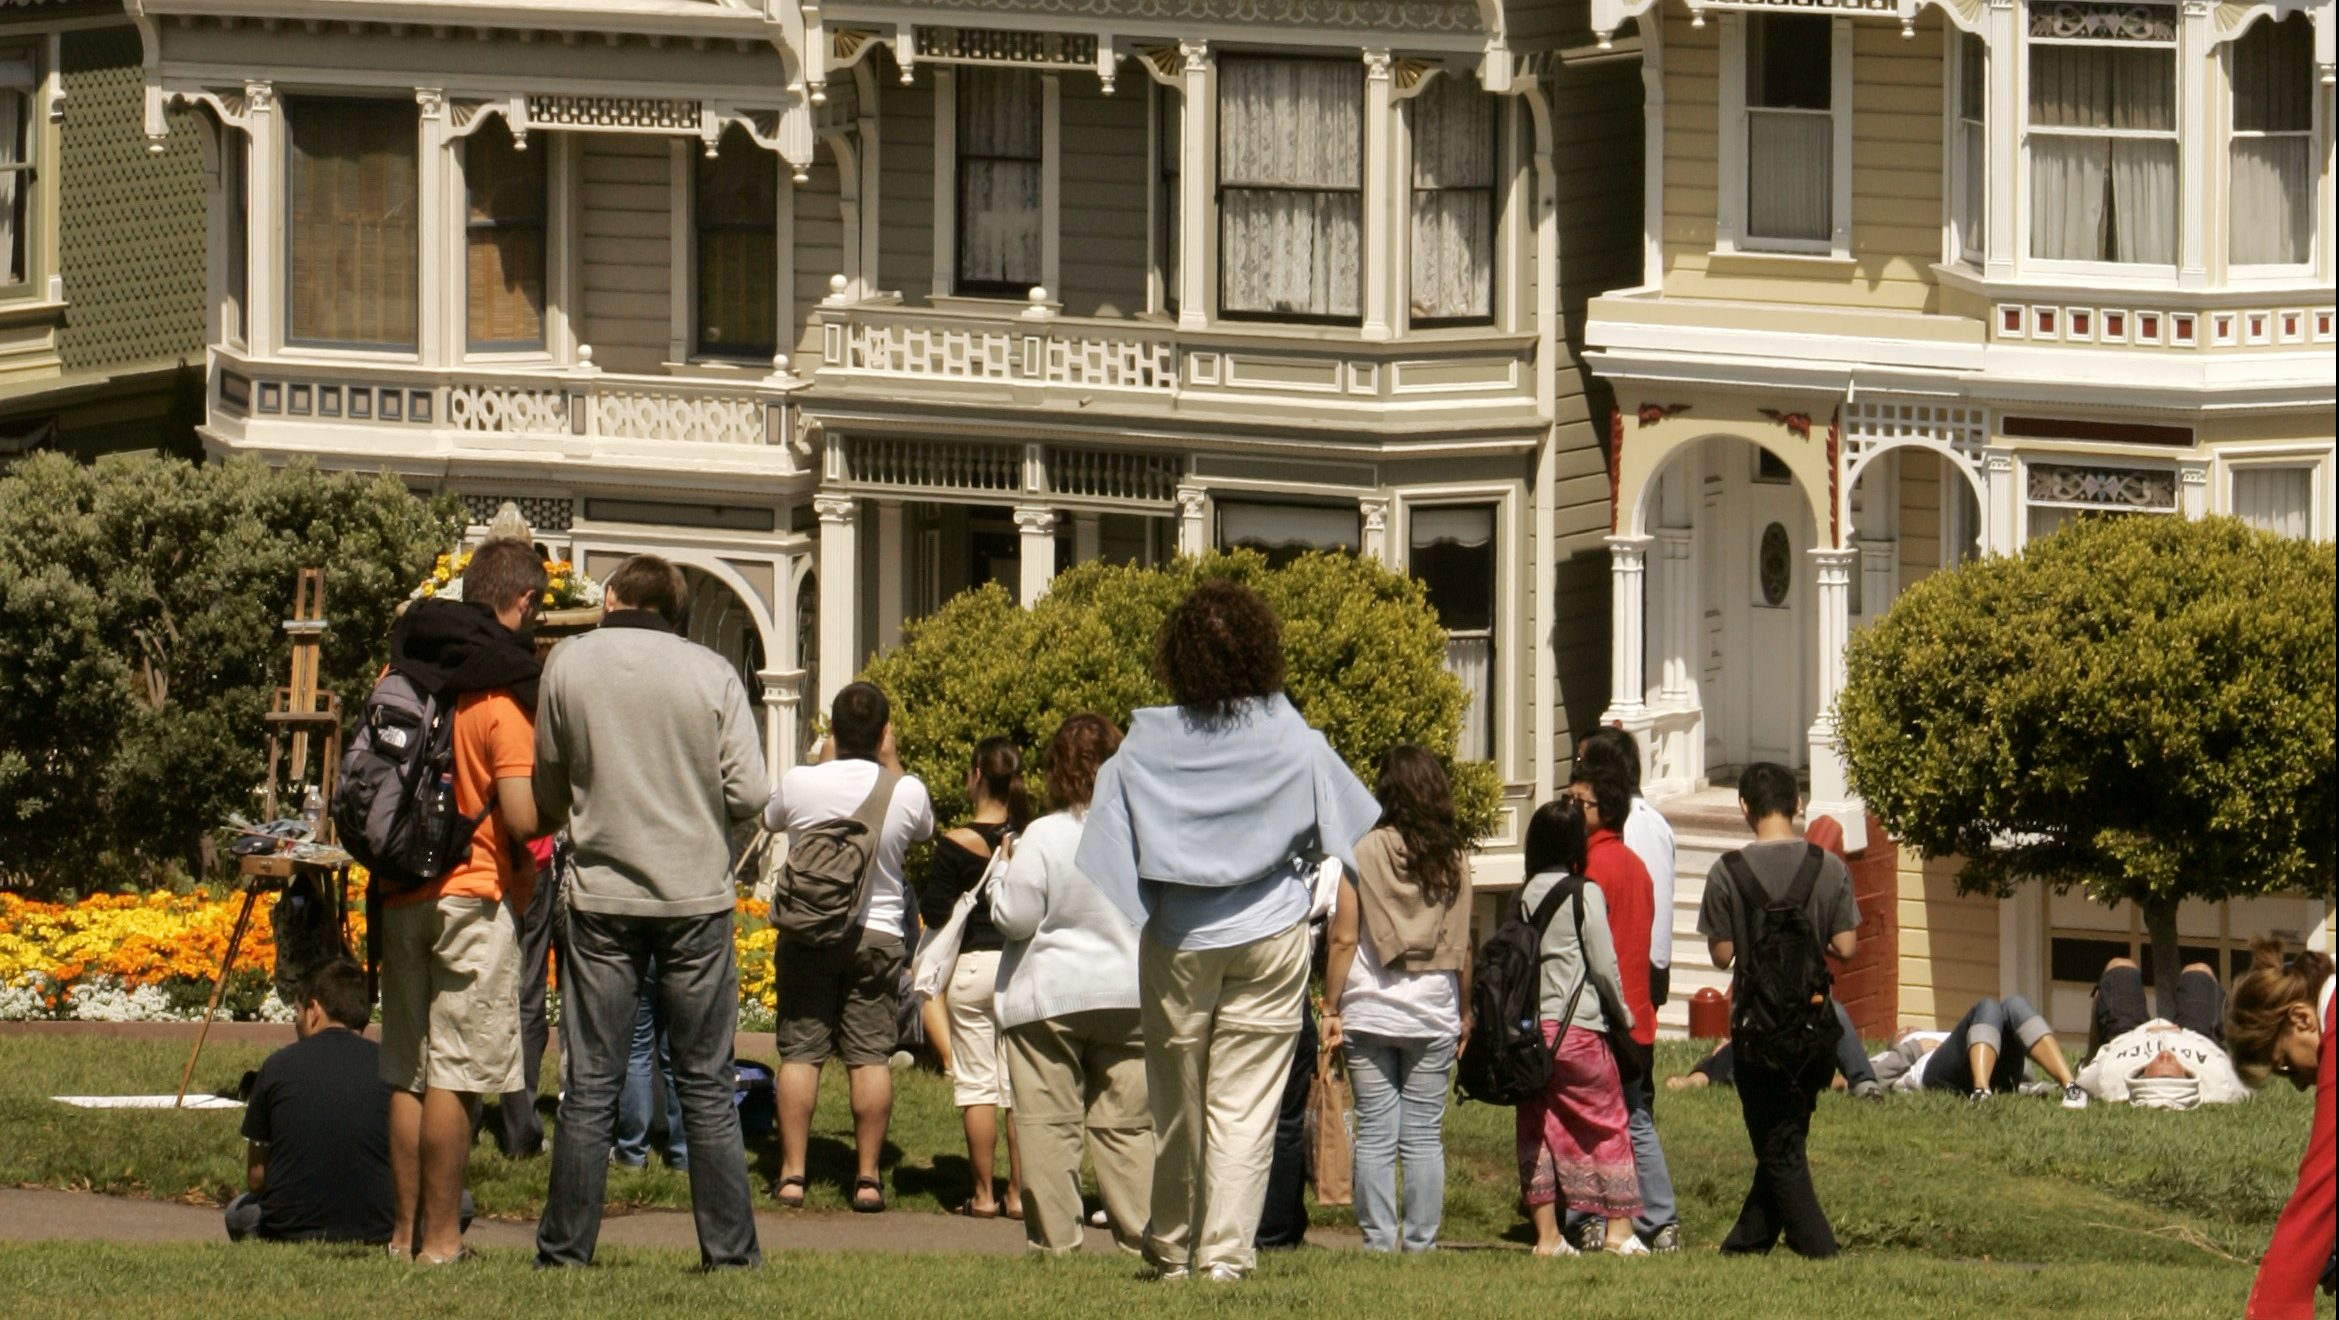 """Visitors look at the skyline of San Francisco, including Victorian homes known as the """"Painted Ladies,"""" in San Francisco, California August 14, 2008."""